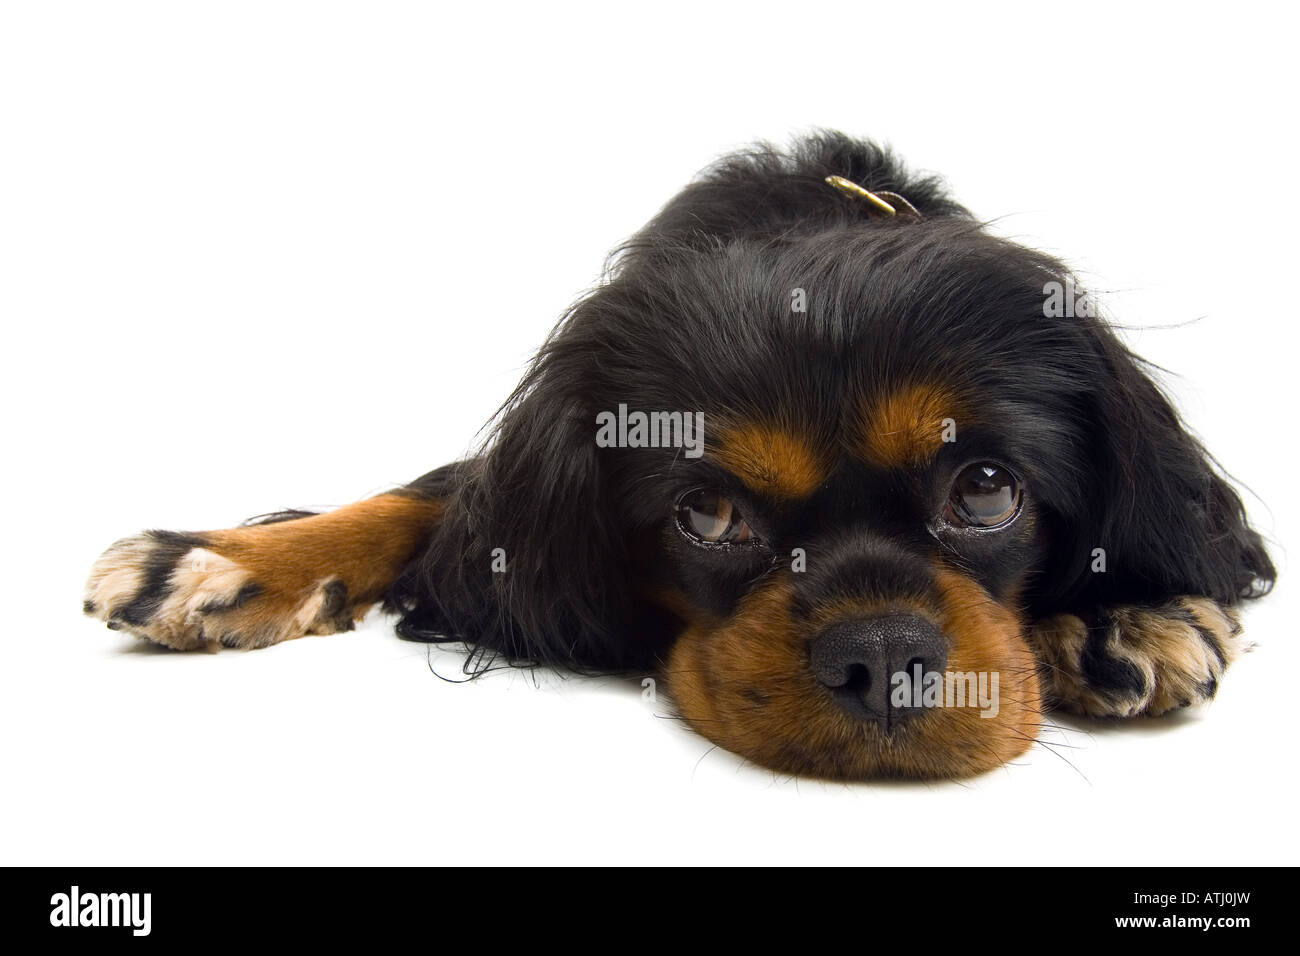 Cavalier King Charles Spaniel dog isolated on a white background - Stock Image